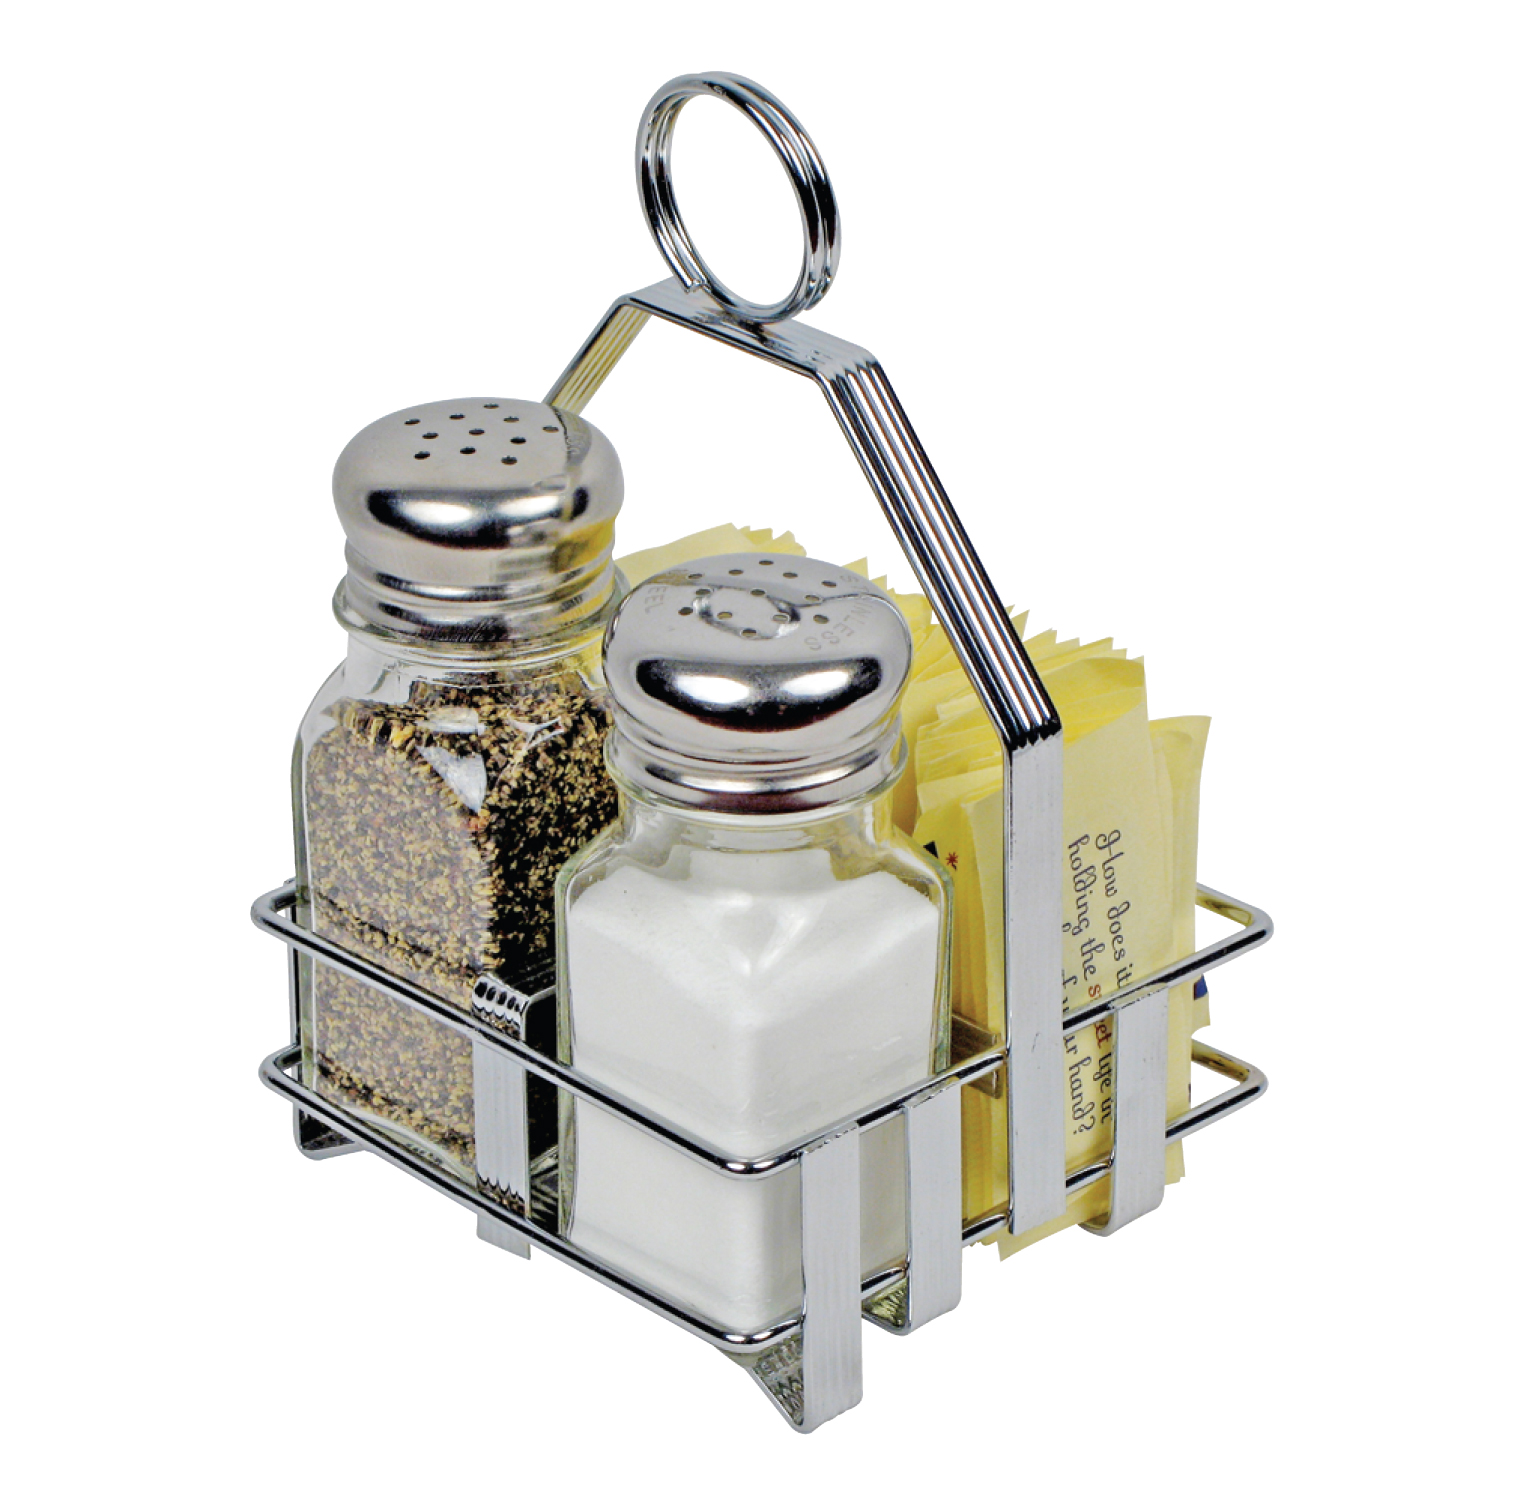 Salt Pepper Holder Chrome Plated Holders Salt And Pepper Shakers And Sugar